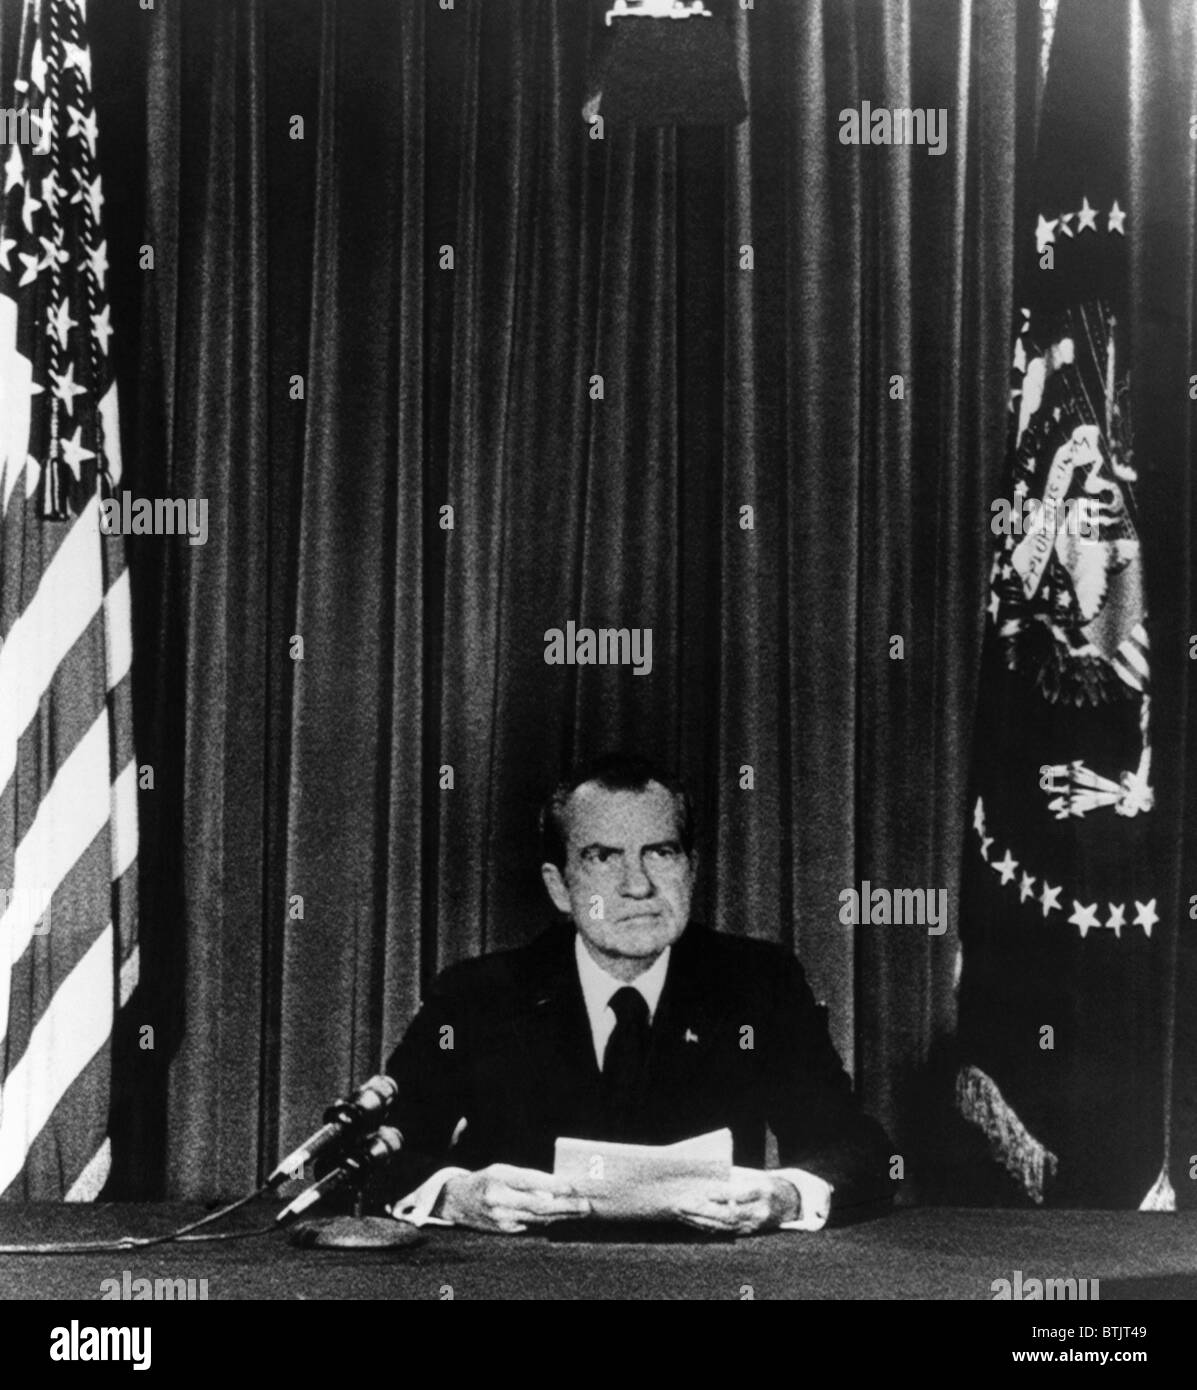 U.S. President Richard Nixon going on national television from the White House to announce his resignation, Washington - Stock Image